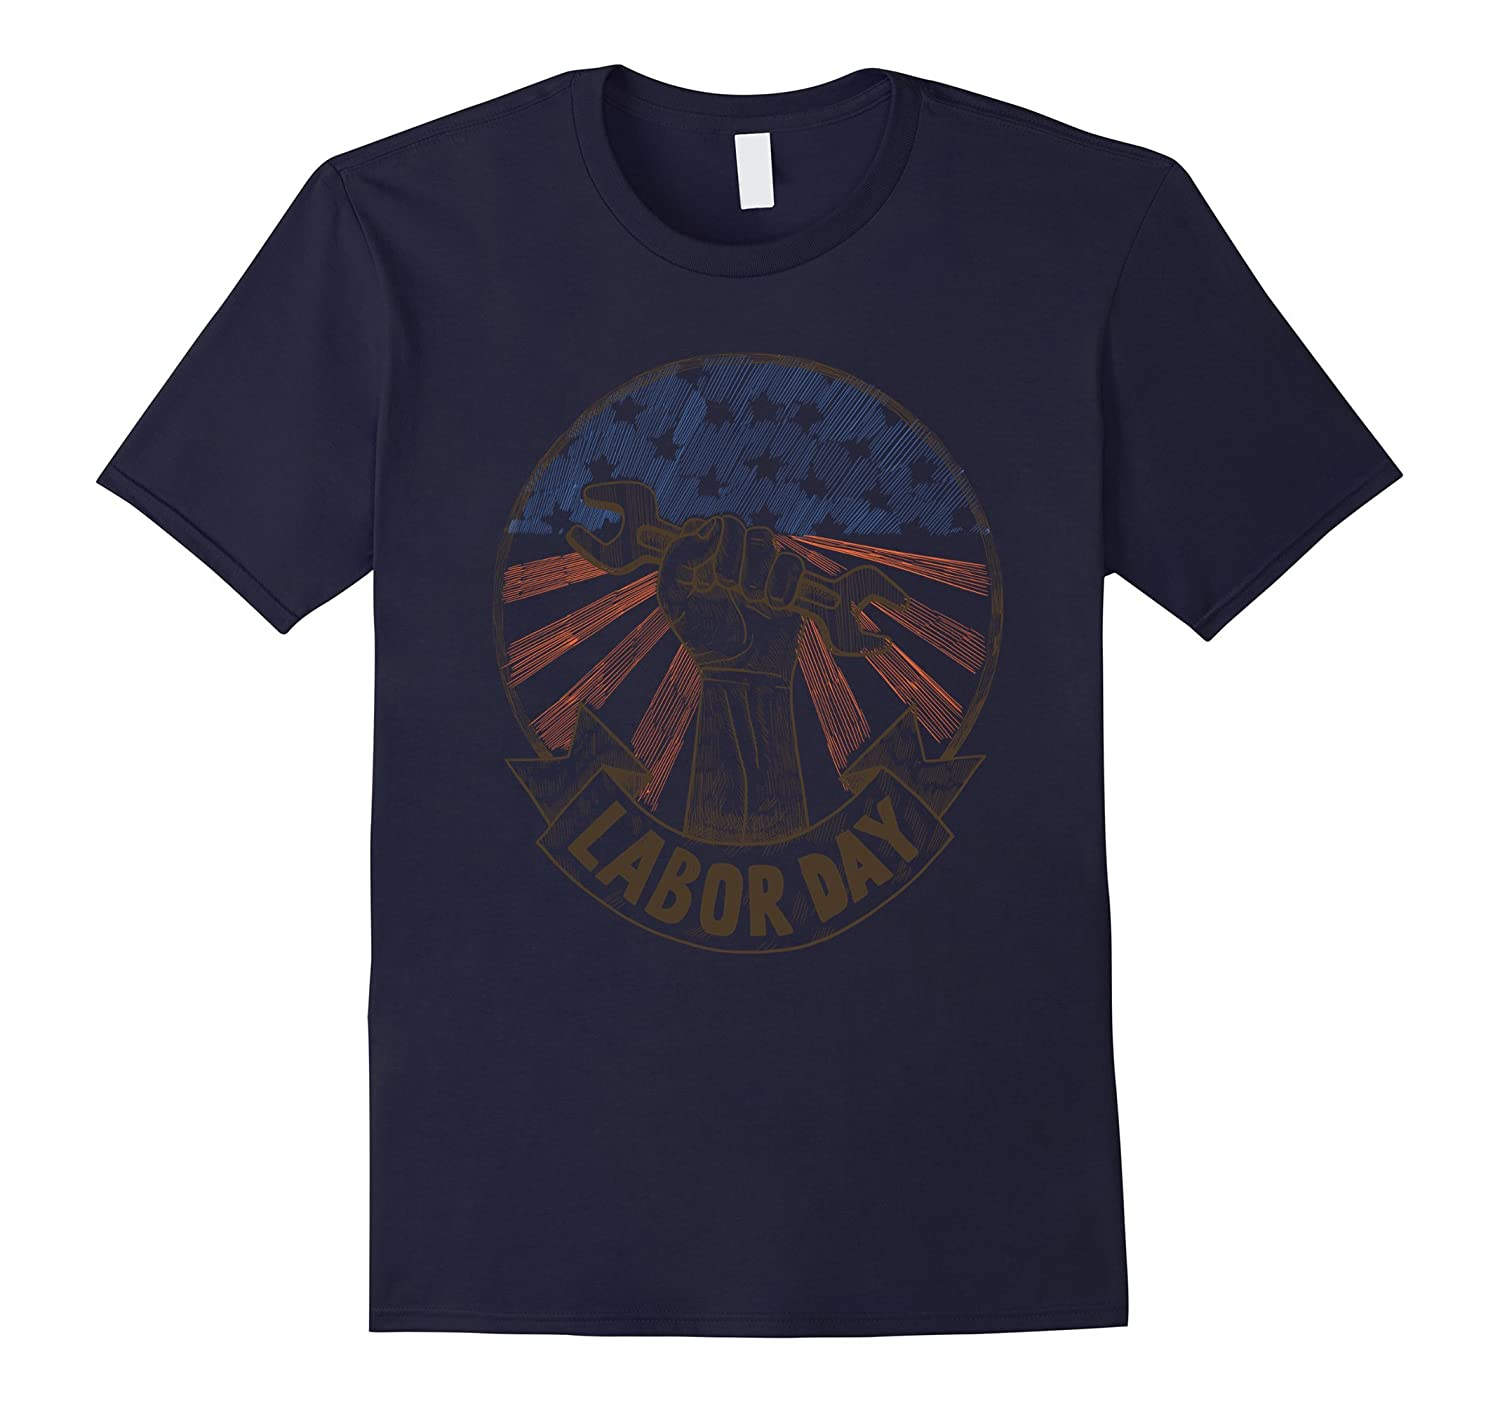 Happy Labor Day T-Shirt, American Flag Holiday Shirt Gift-BN